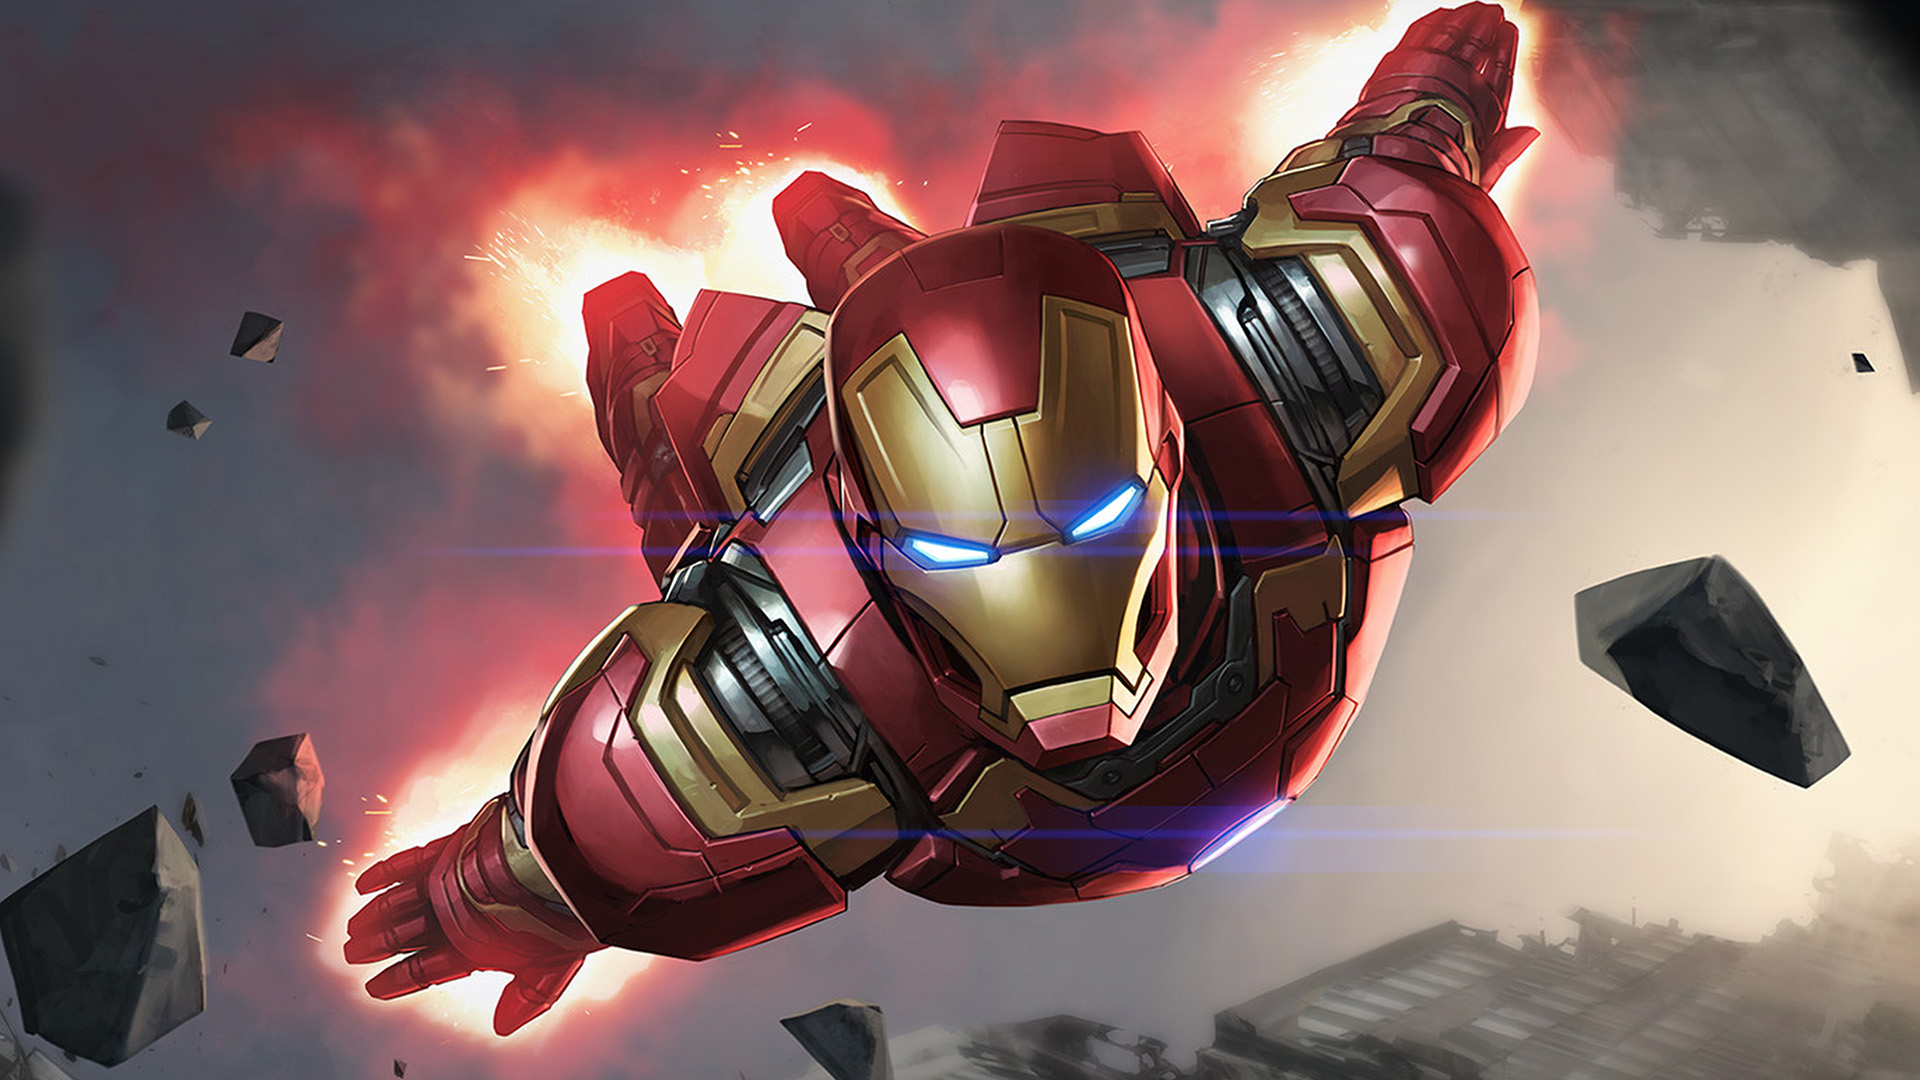 Tony Stark Hd Wallpapers I Love Papers Az69 Ironman Hero Marvel Illustration Art